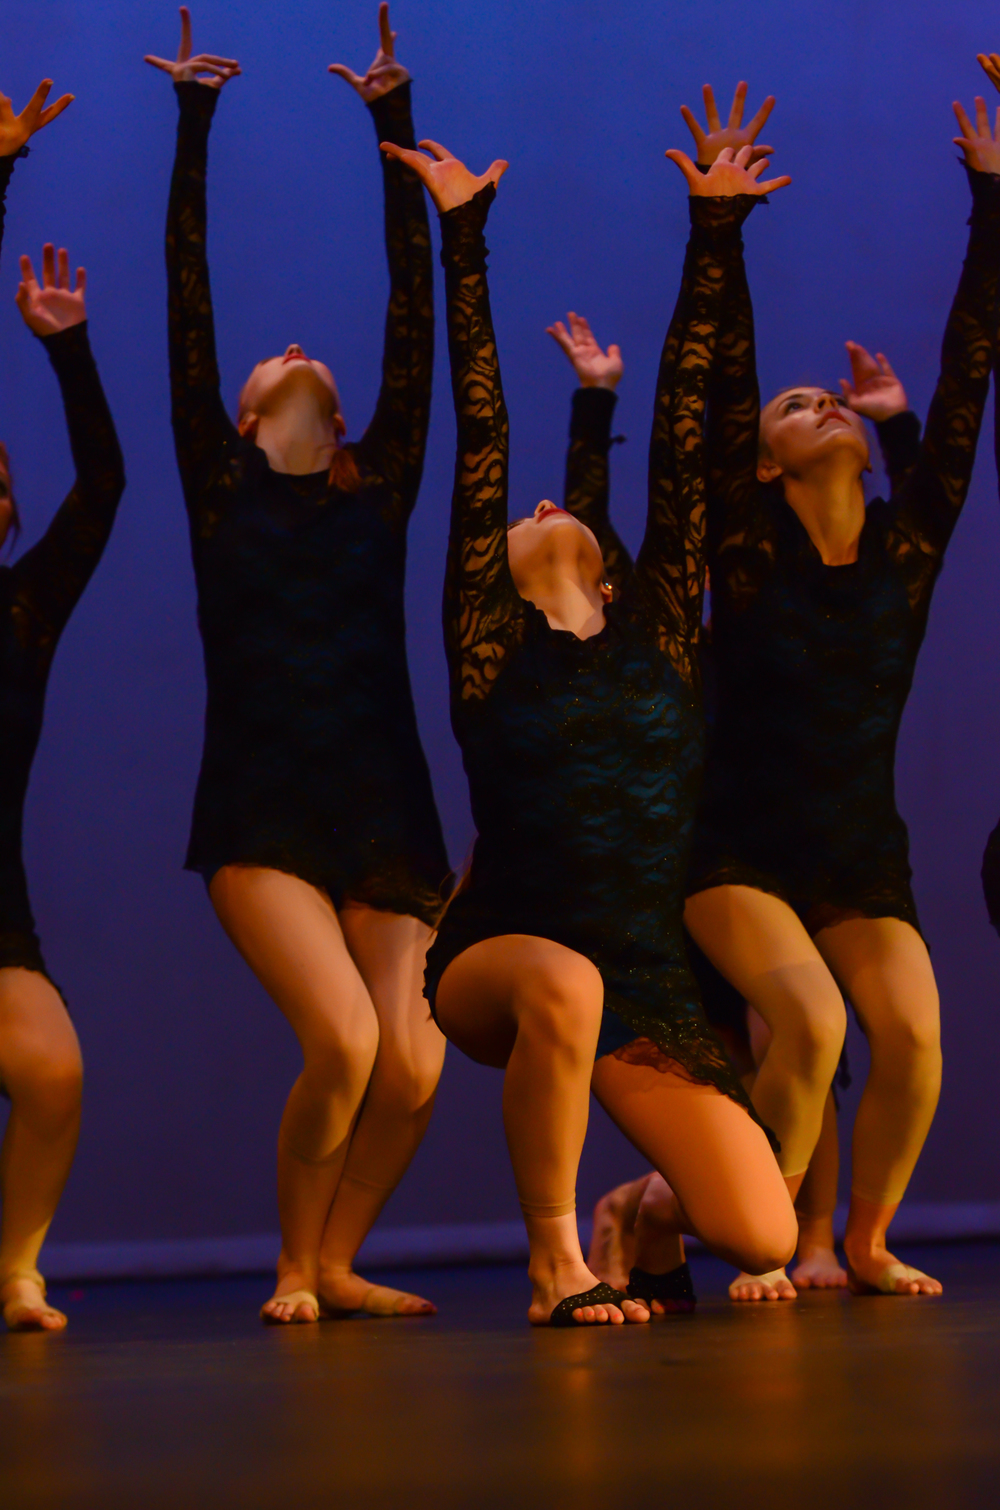 A photo from Friday night's Payson Dance Company concert.   Company members are Danica Broadhead, McKenna Charles, Paris Coleman, Tesha Decker, Lindsay Gneiting, Shyanne Kirkpatrick, Ana Lopez, Helina Luhtala, Madilyn Lyons, Amanda Nelson, JaLee Ore, Kyra Saunders, Victoria Settle, Kaitlynn Spainhower, Shelby Thomas, and Emma Voeller.         Photo courtesy Todd Phillips (see    picmeshining.com    for more)